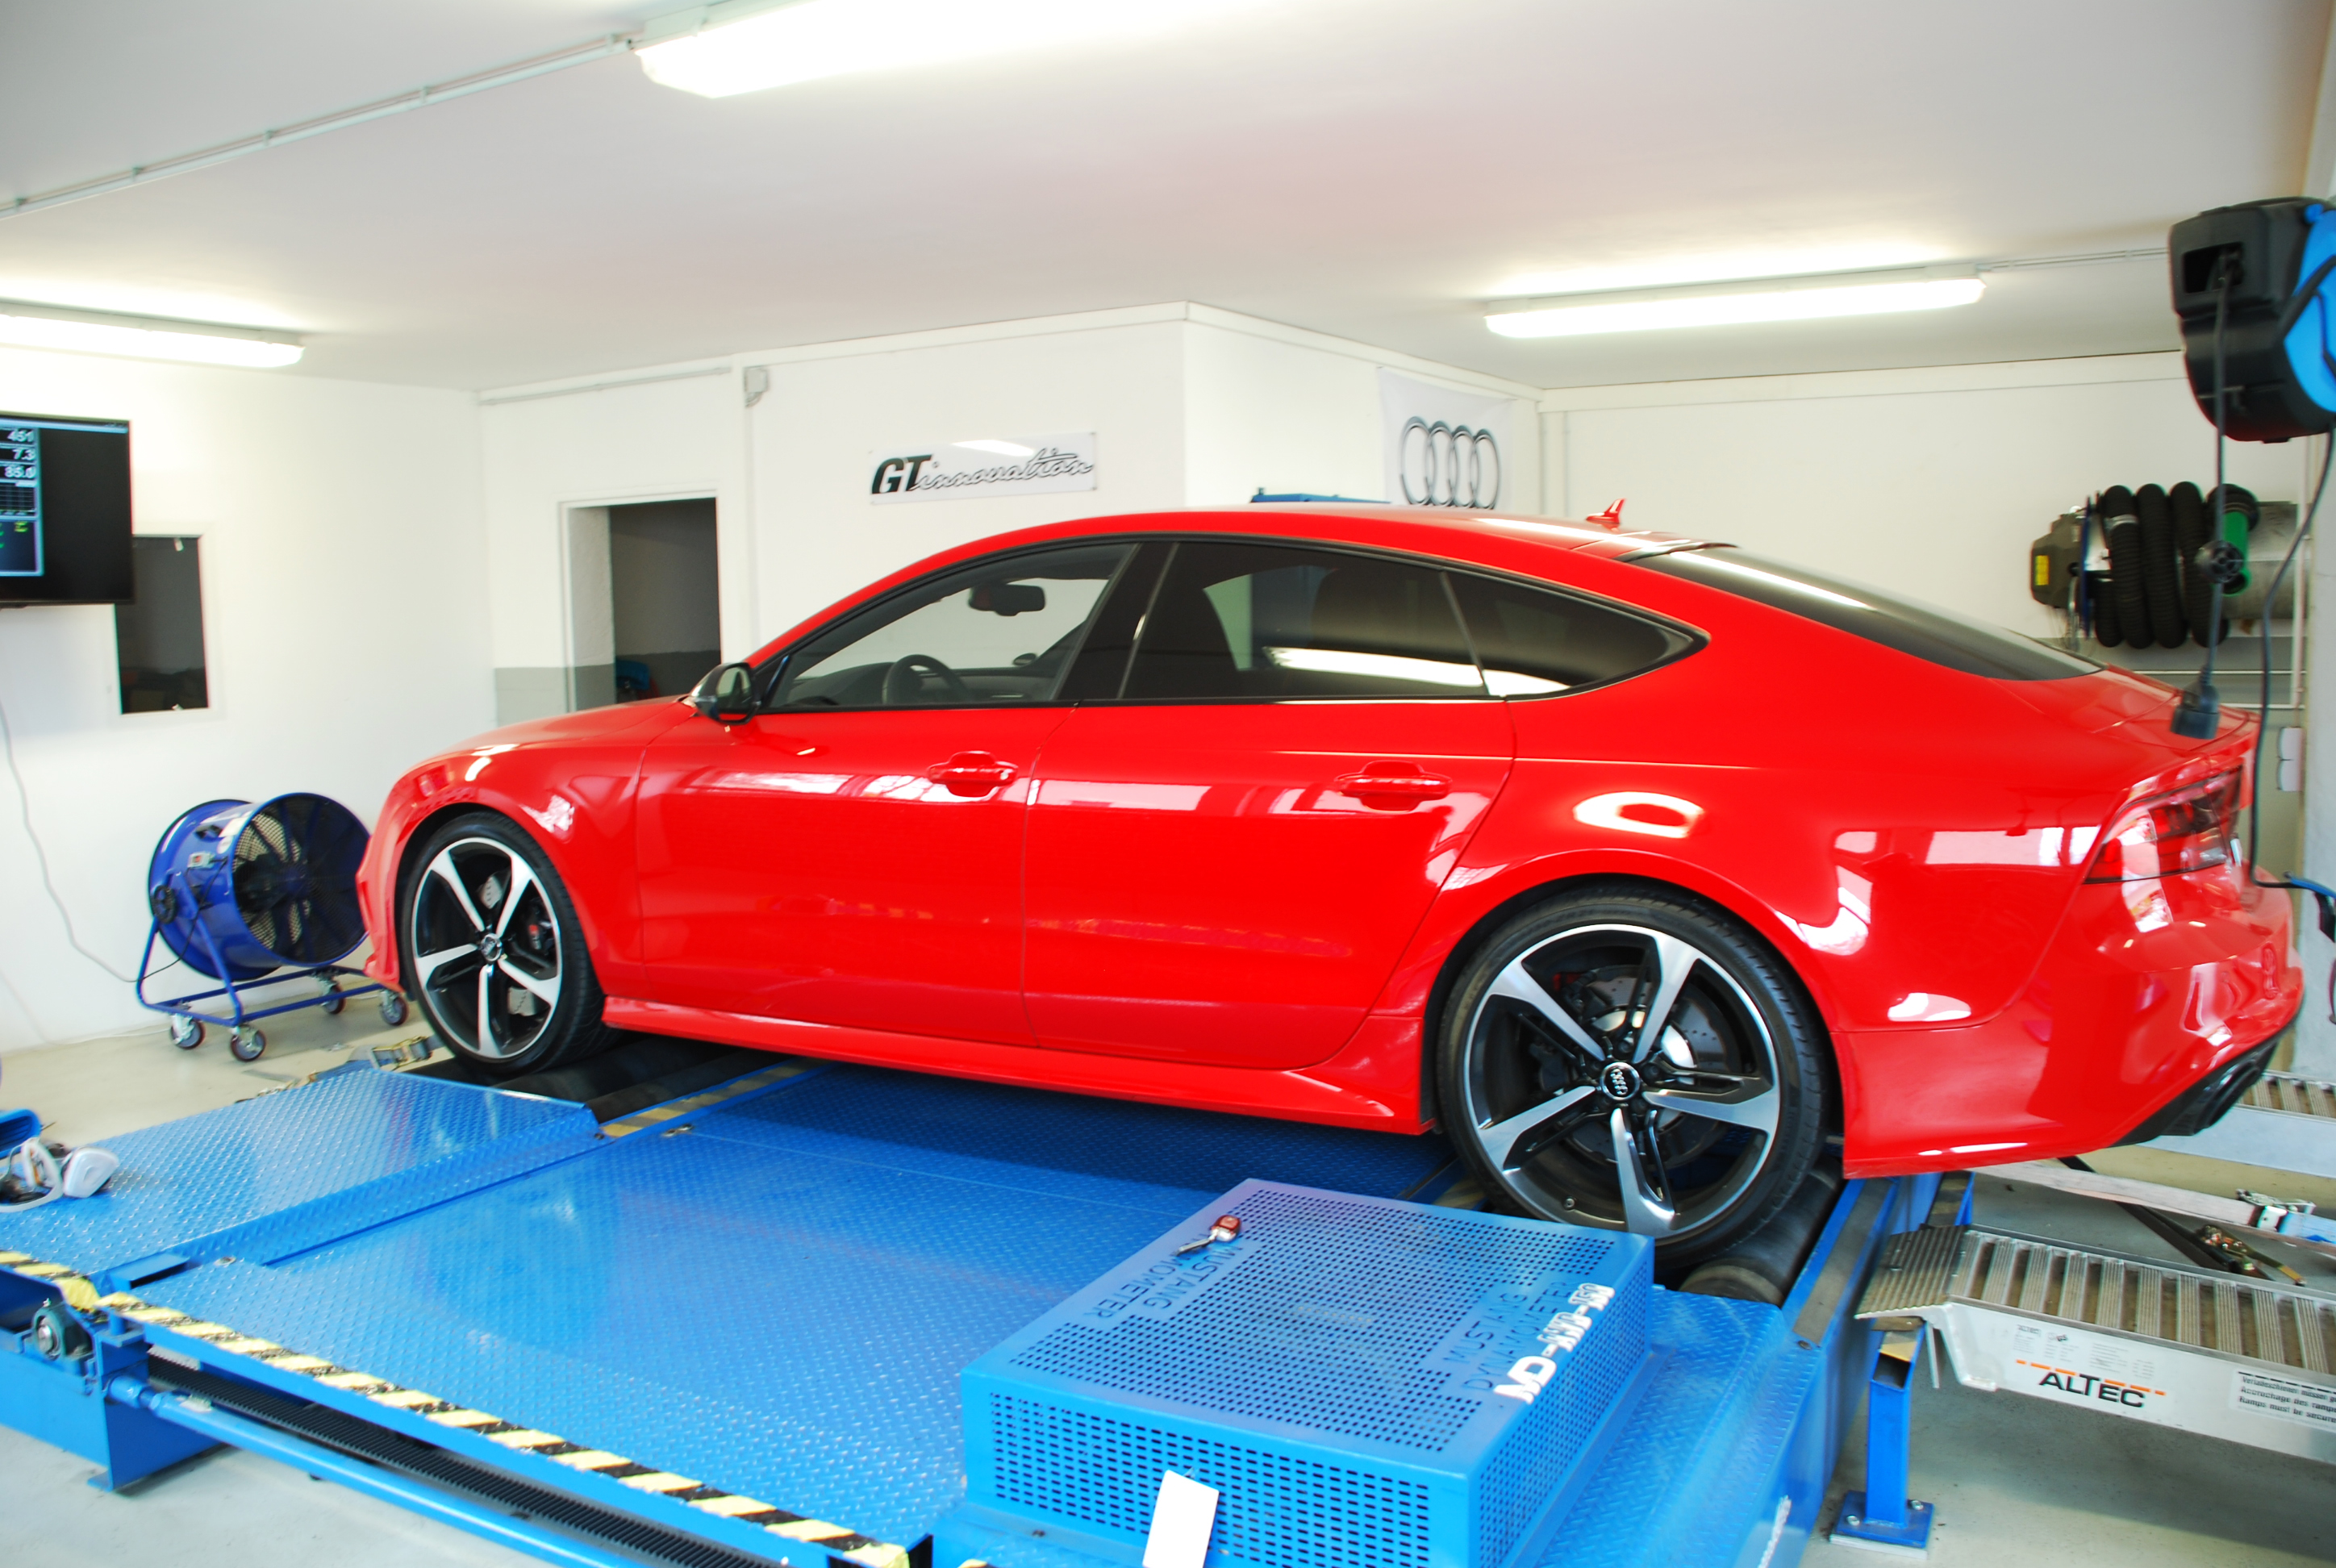 Audi Rs7 717ps 1041nm Gt Innovation Engine Diagrams And 1041 Nm Came Out Of This V8 40l Tfsi Easily With Flat Torque Horsepower Curves All Over The Power Band